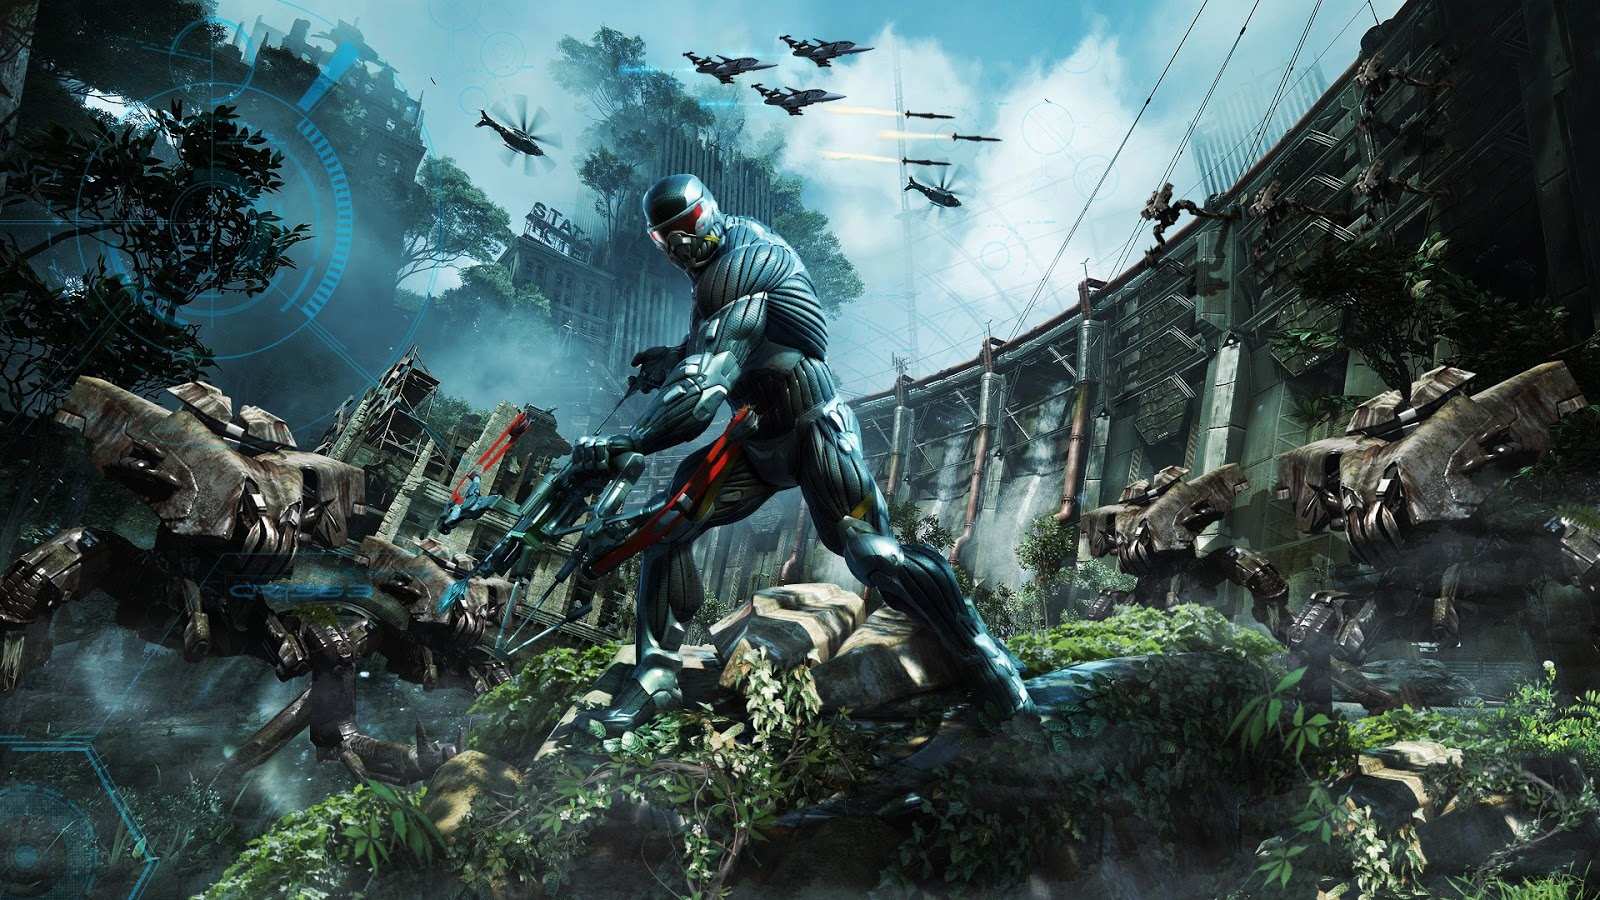 http://3.bp.blogspot.com/-gCh1SO8kdRE/UNNT2WTsu4I/AAAAAAAAKnc/m-Wbs-gBa4U/s1600/Crysis_3_wallpapers+(3).jpg